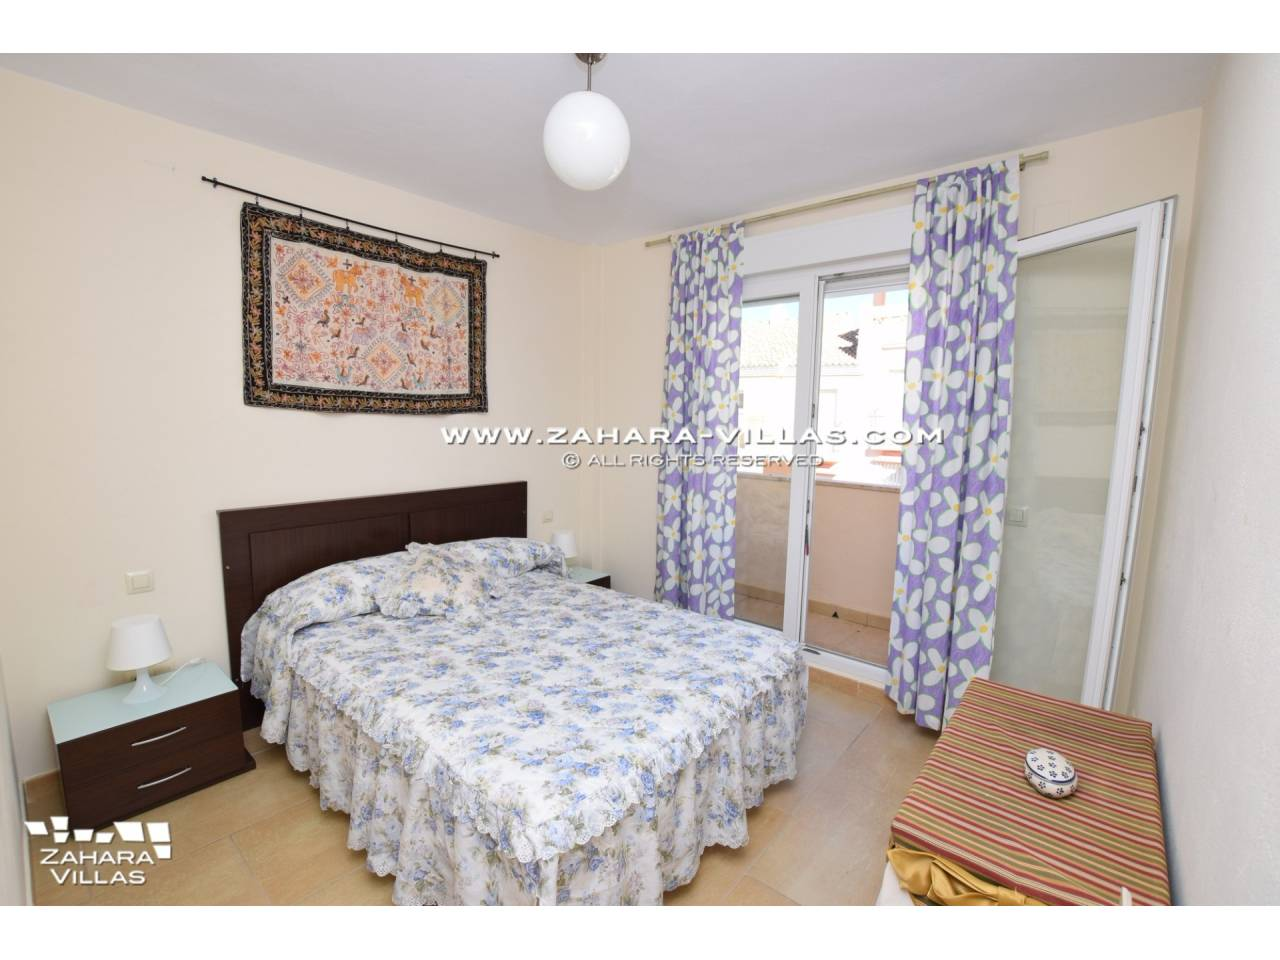 Imagen 19 de Semi-detached house for sale en Zahara de los Atunes